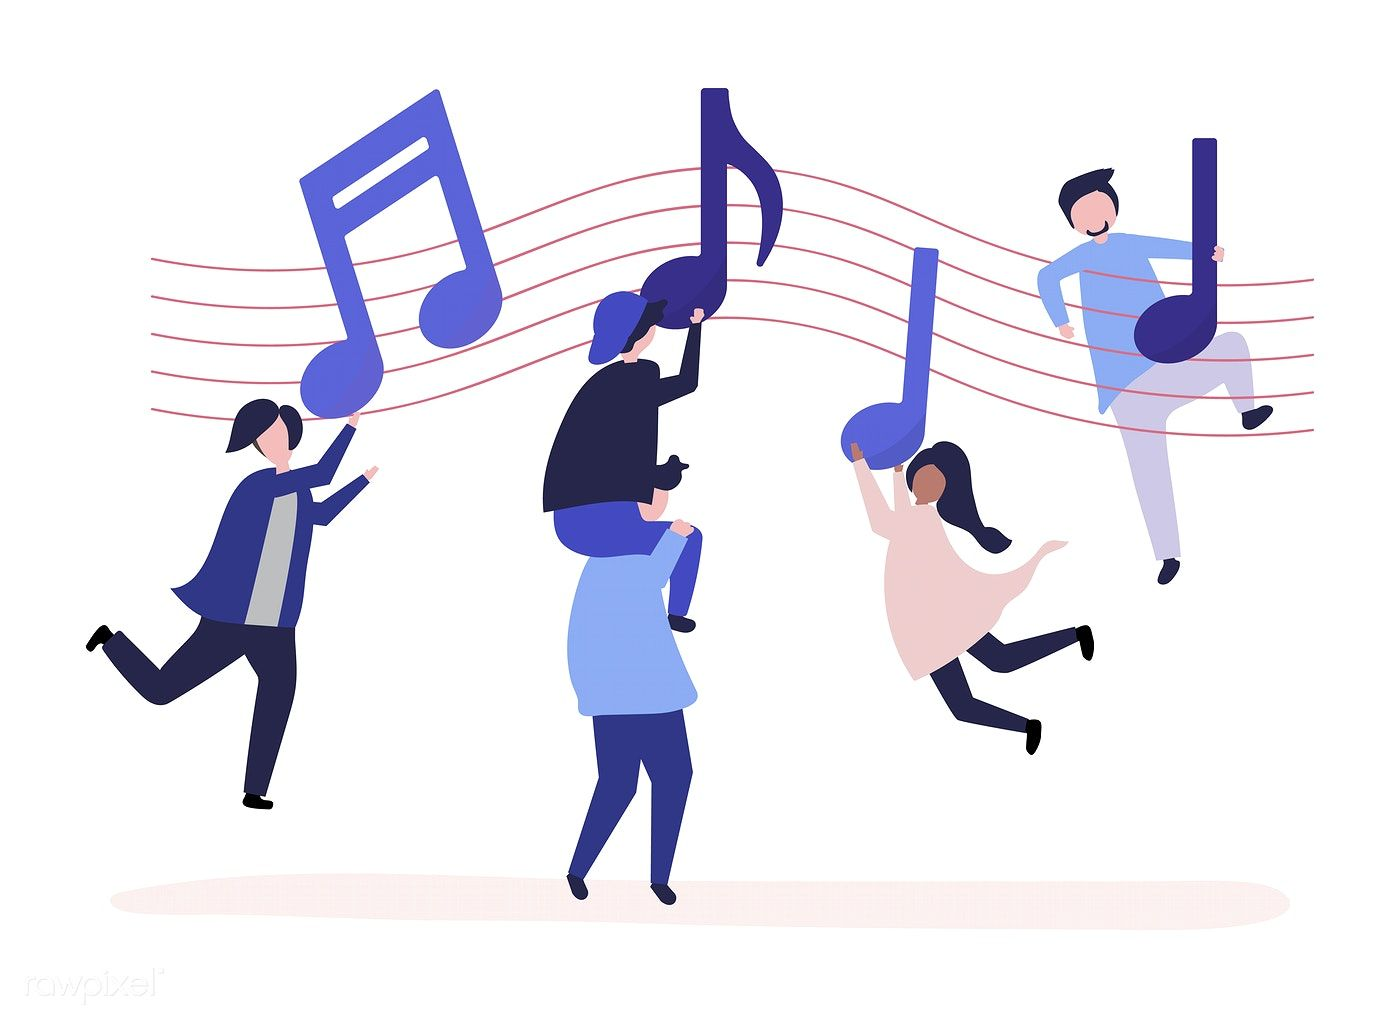 Download Premium Vector Of People Dancing To The Music With Musical Notes People Dancing Dance Vector Musicals